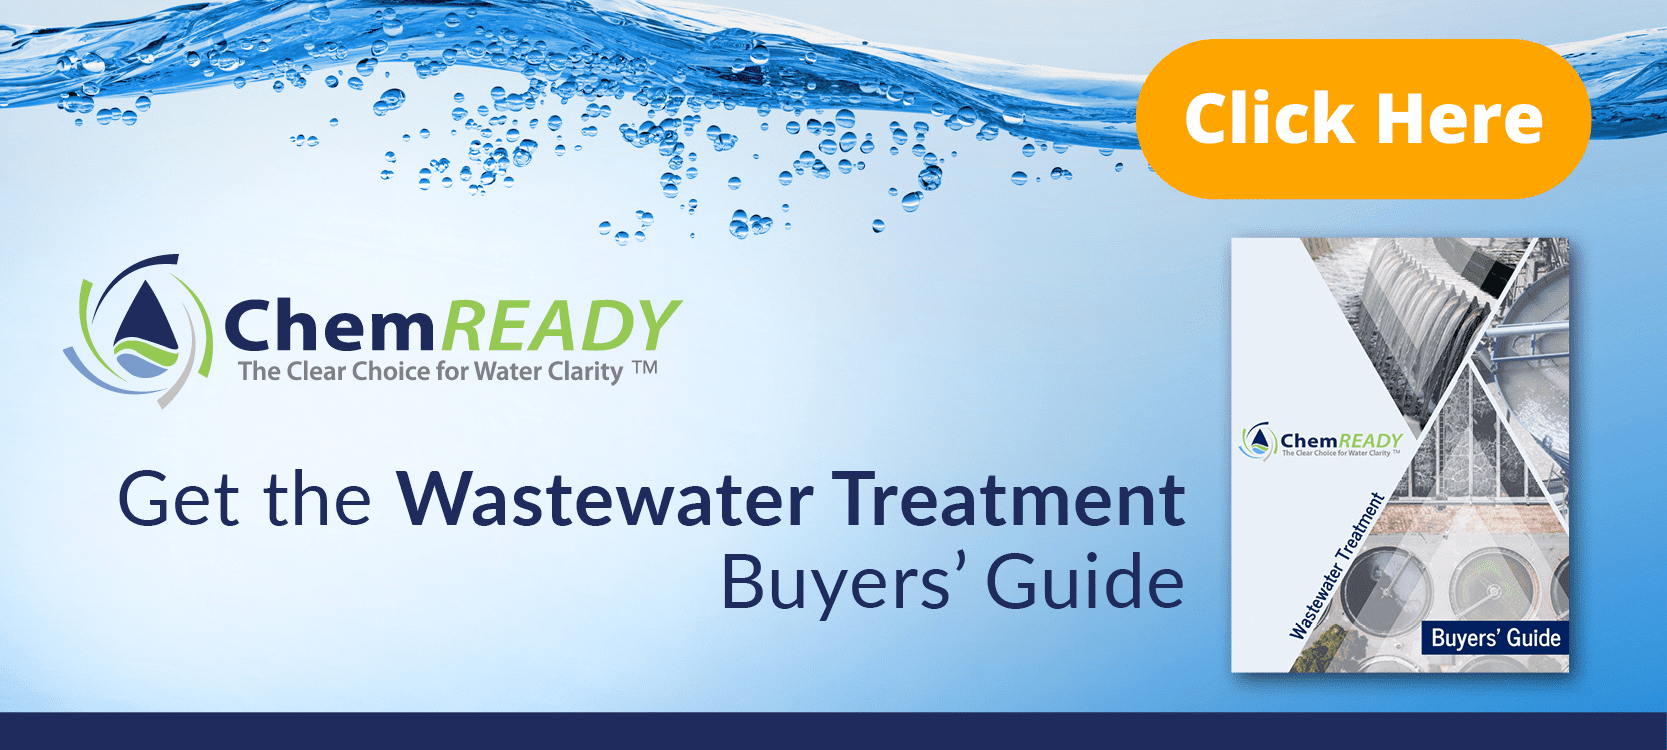 Wastewater Treatment Buyers Guide - Download Here